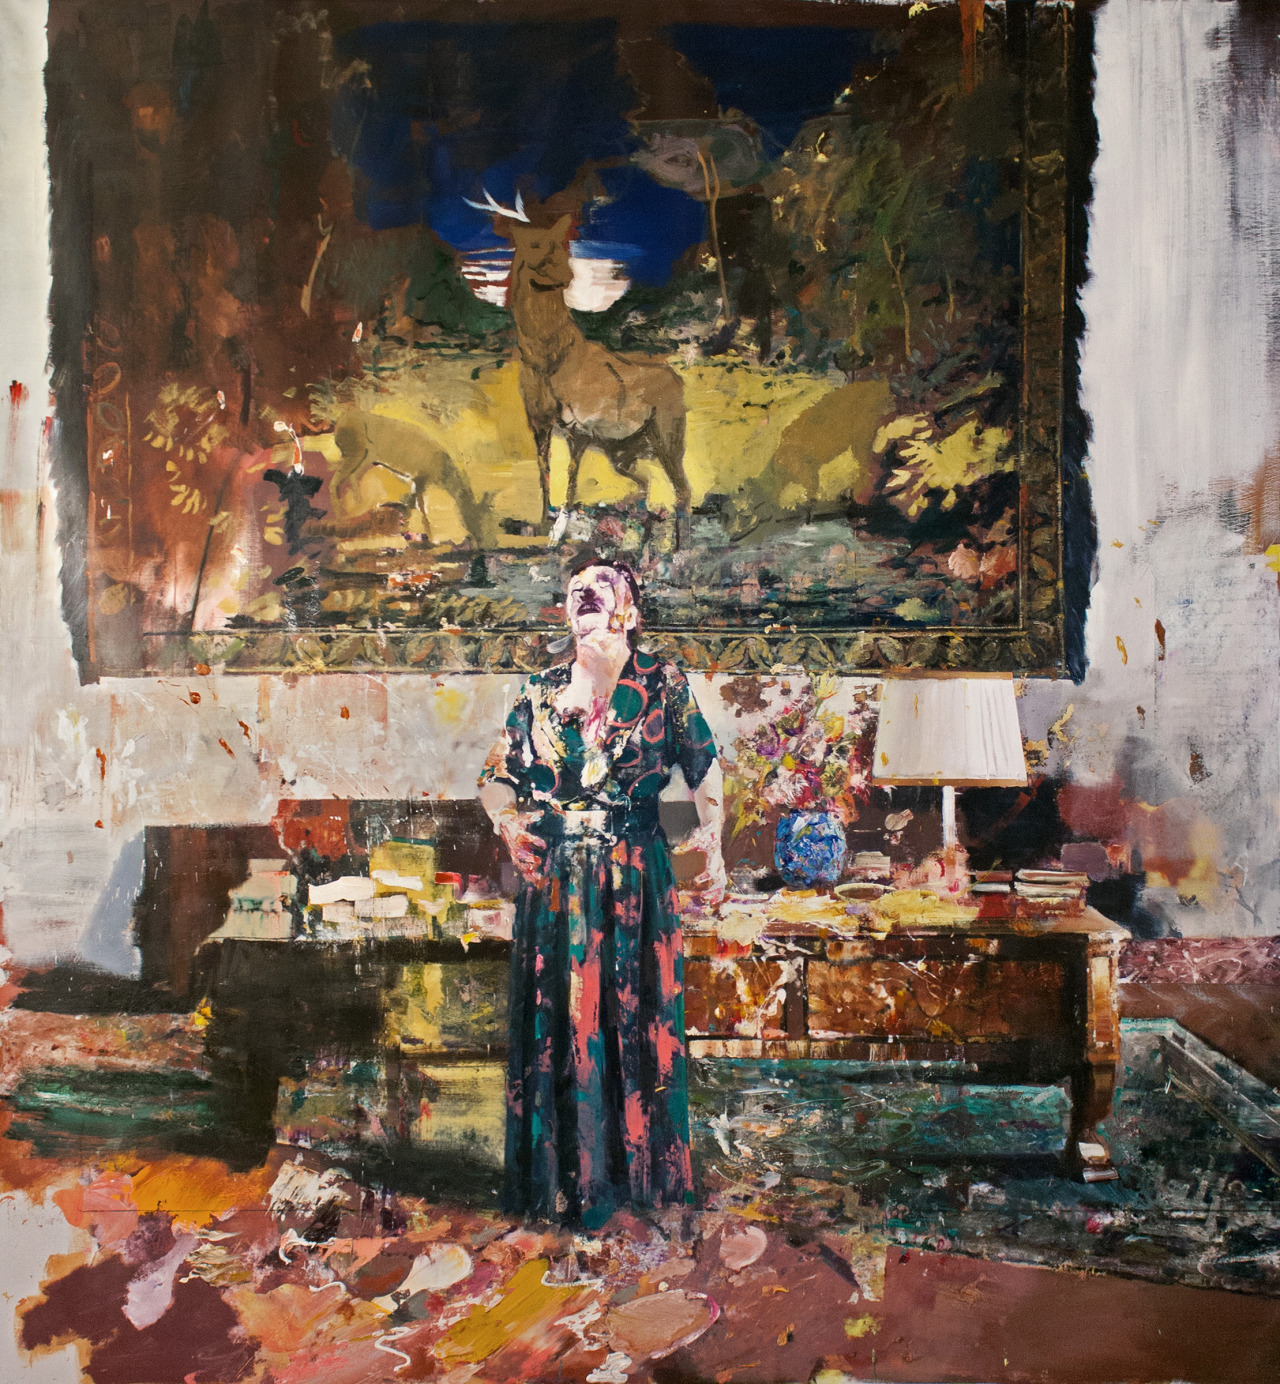 Pace's first exhibition of the young Romanian artist Adrian Ghenie will close tomorrow, Saturday, May 4th, 2013.  We hope you can stop by 534 West 25th Street.  © Adrian Ghenie, courtesy Pace Gallery